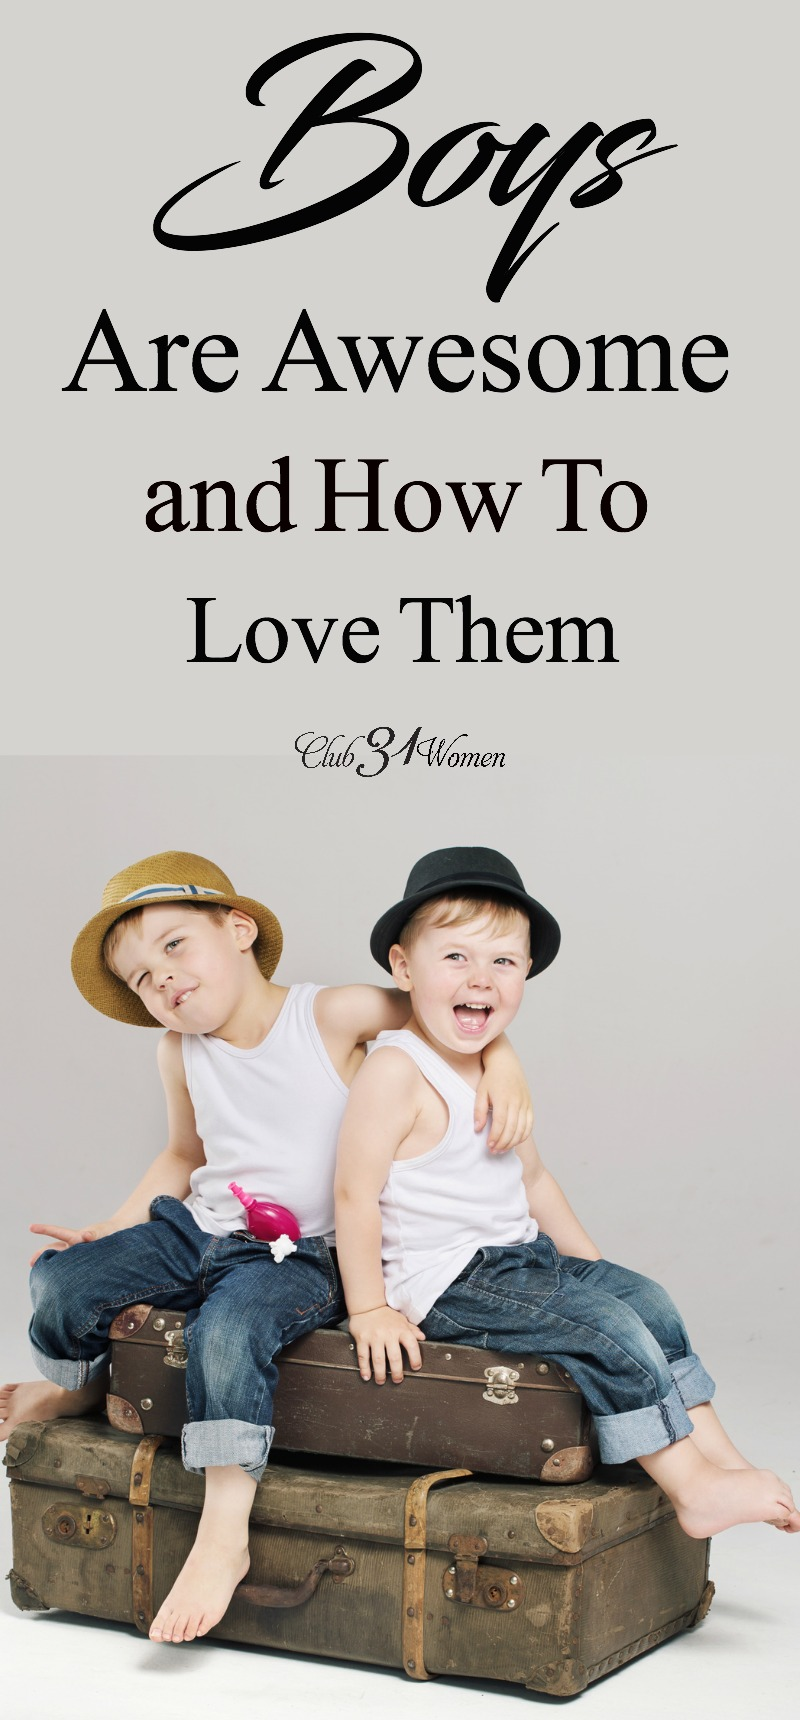 Boys are awesome! There's so much to appreciate in our sons and something to know about loving them. Some really GREAT advice here - from a mom who knows! via @Club31Women